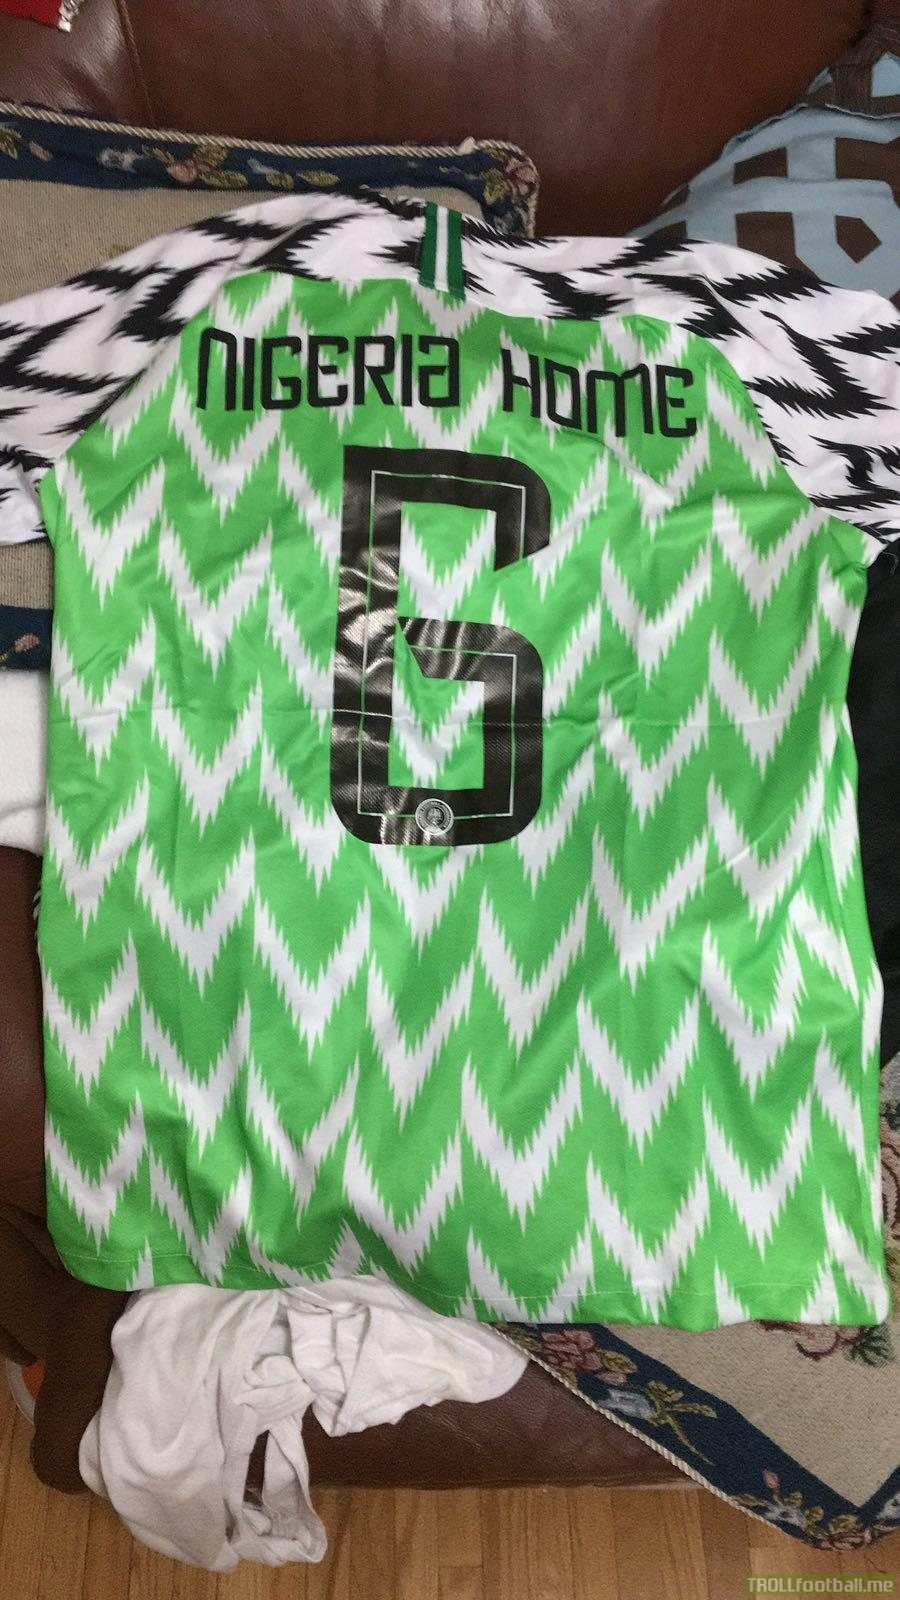 Orders Nigeria home jersey #6 from China...lol